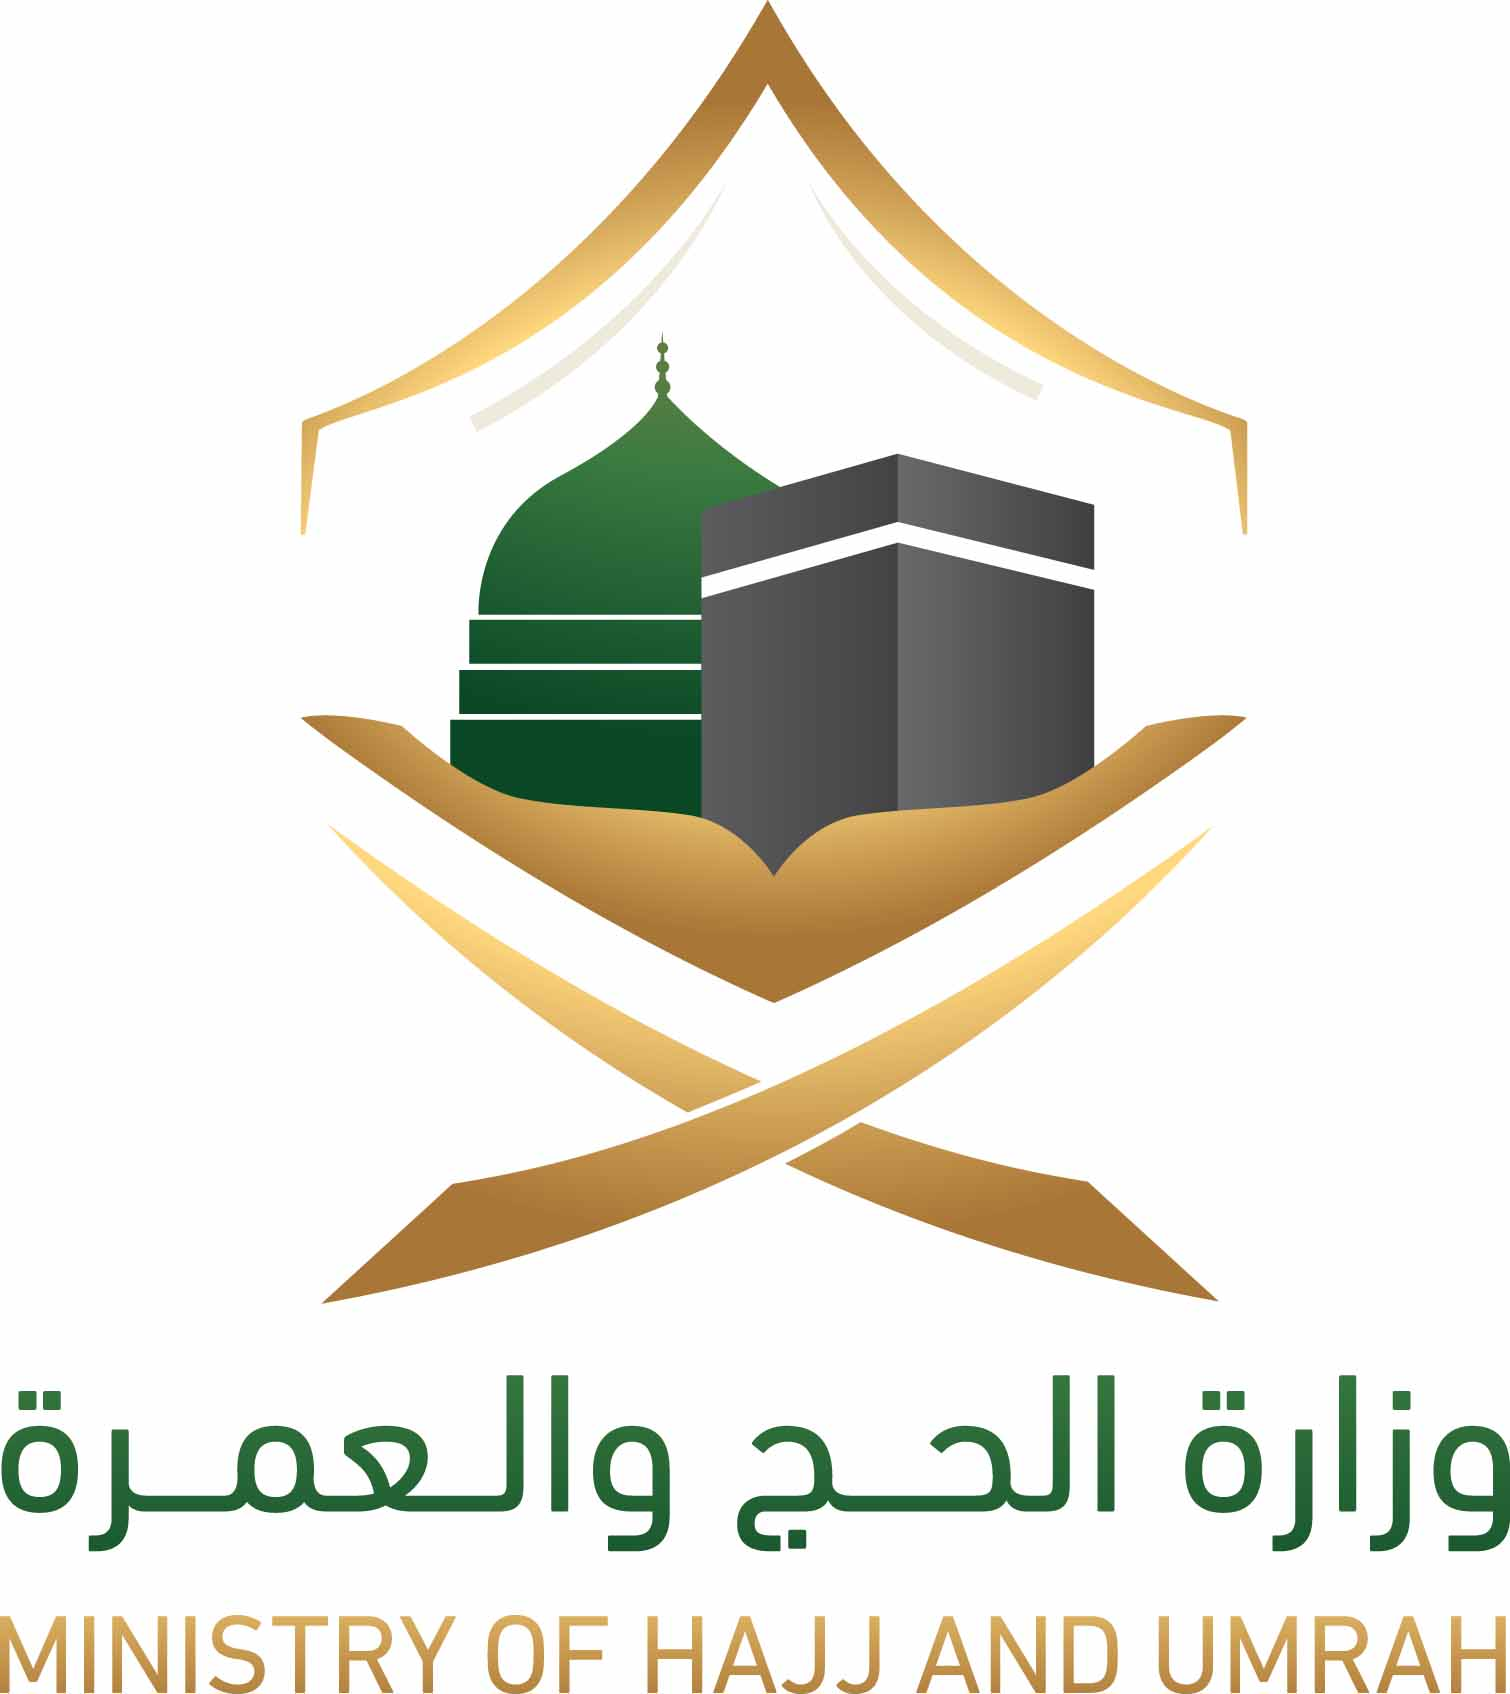 Ministry Of Hajj and Umrah